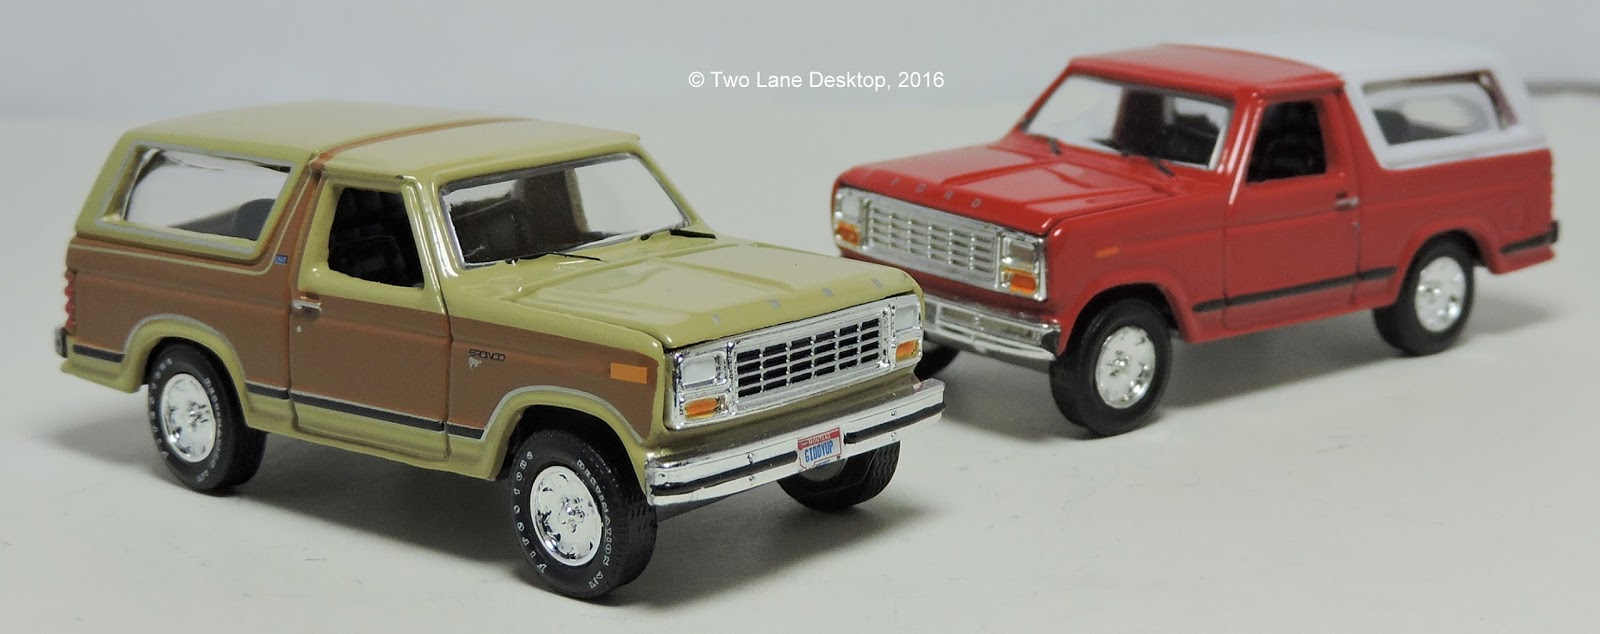 Racing Champions Mint 1980 Ford Bronco Two Lane Desktop Lifted As For The Larger Sibling In 1980s Not Many Replicas Have Been Made Hot Wheels A Rugged Version With Plastic Roof Section At Rear